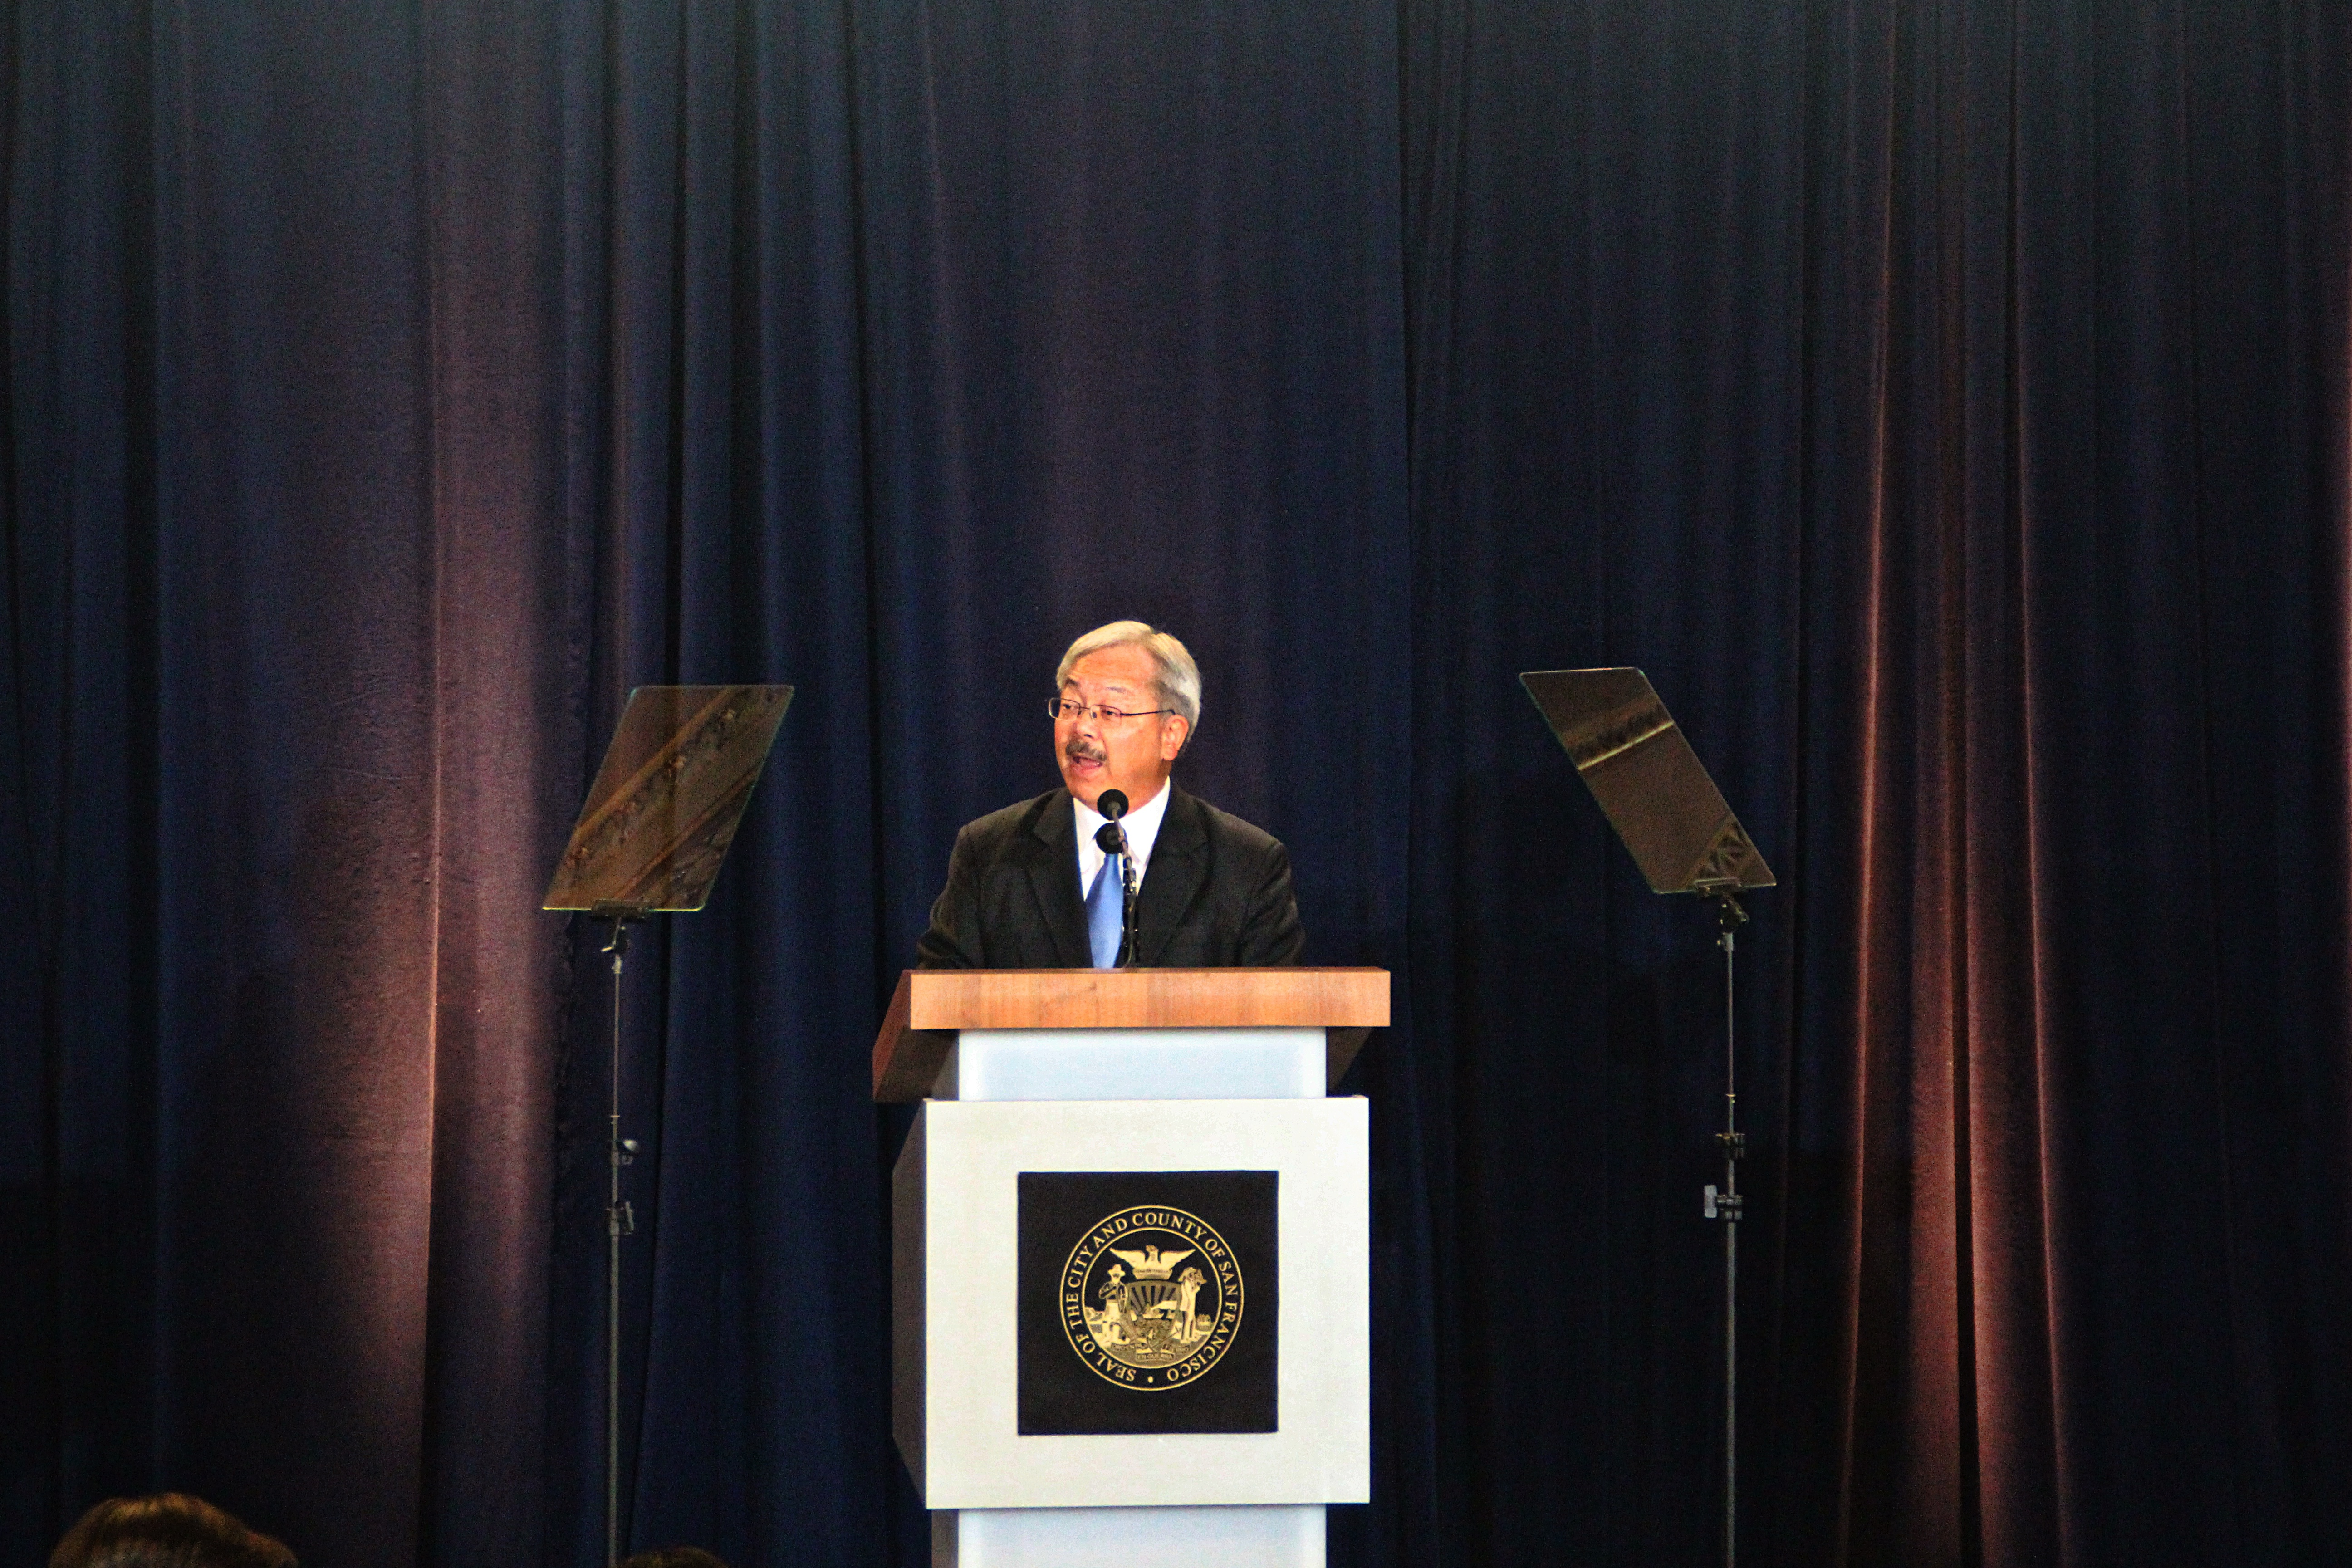 Mayor Ed Lee's state of the city address touched upon some of the pressing issues the city is facing: housing crisis, homelessness, dwindling trust in the police and San Francisco taking a stance against Trump's onslaught on minorities and immigrants. Photo by Sana Saleem.